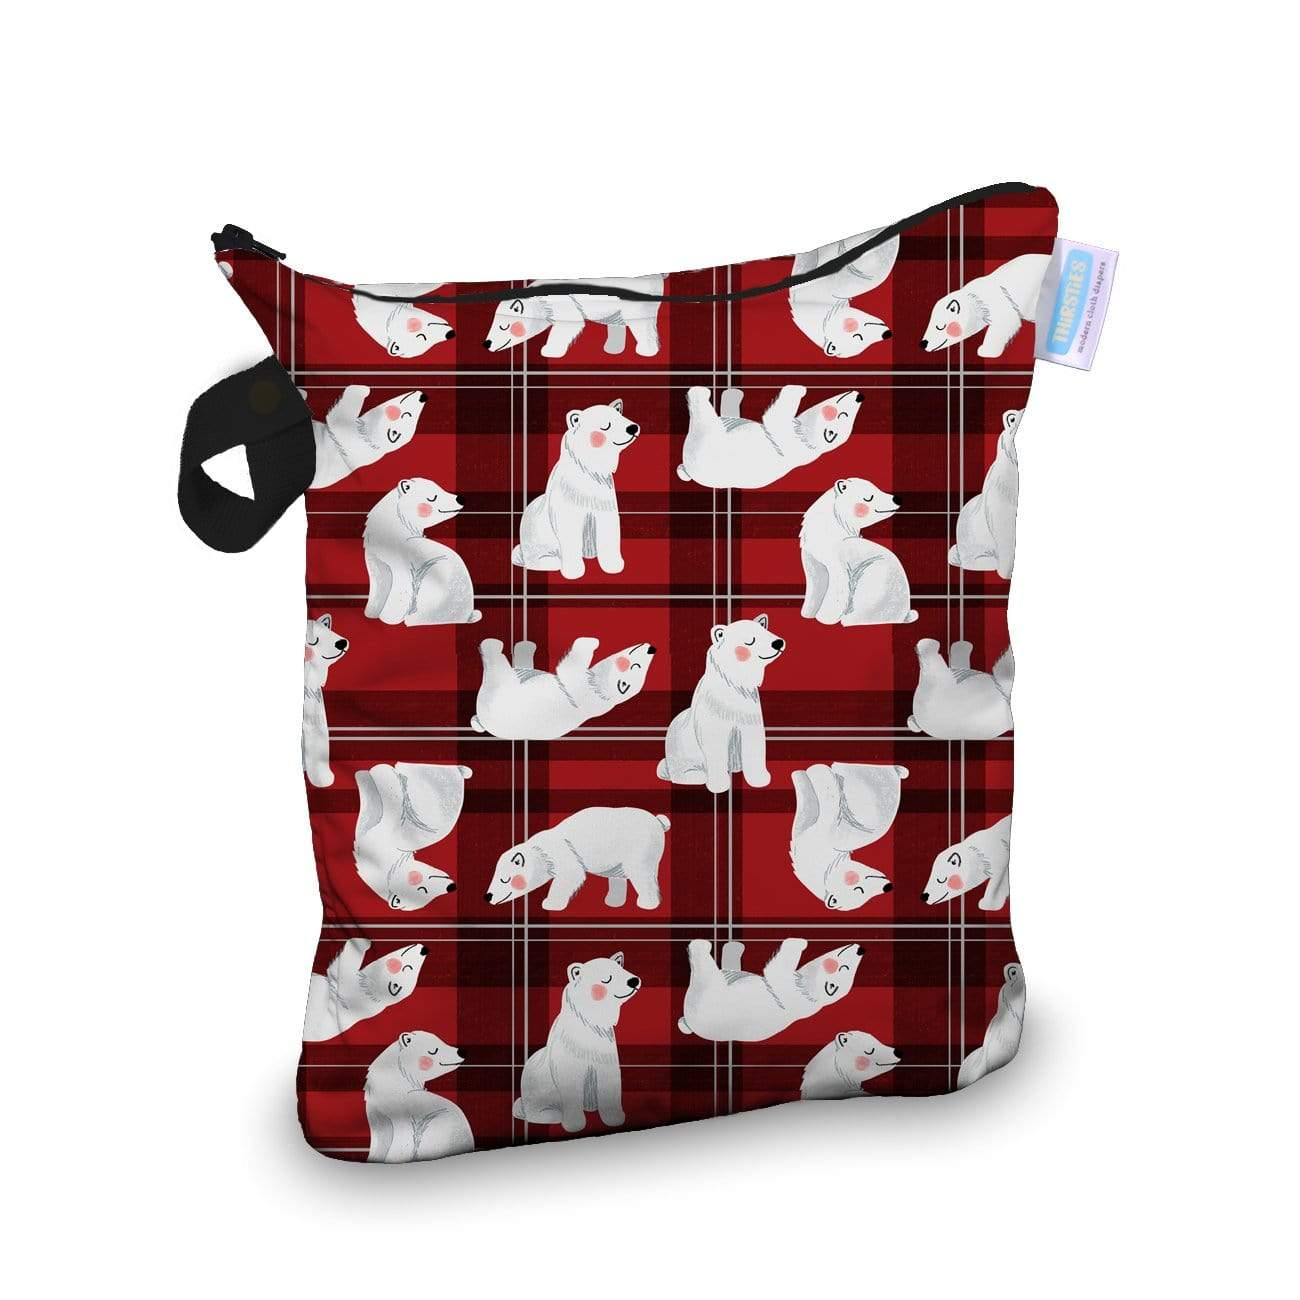 Thirsties Wet Bag - Polar Plaid